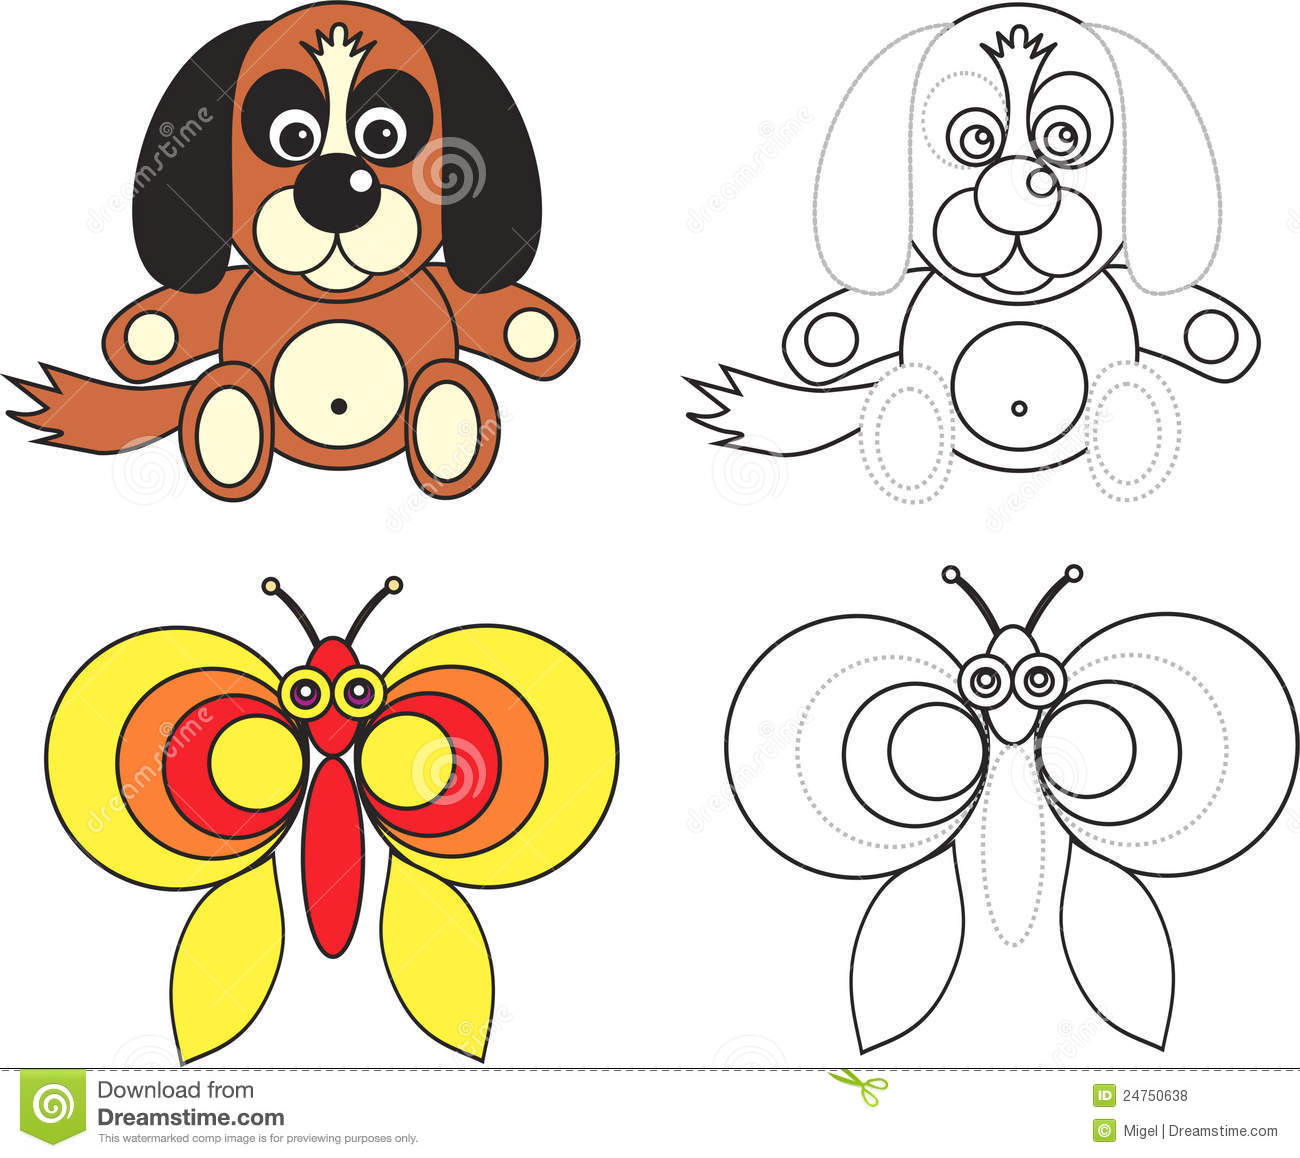 Coloring page book for kids - dog and butterfly